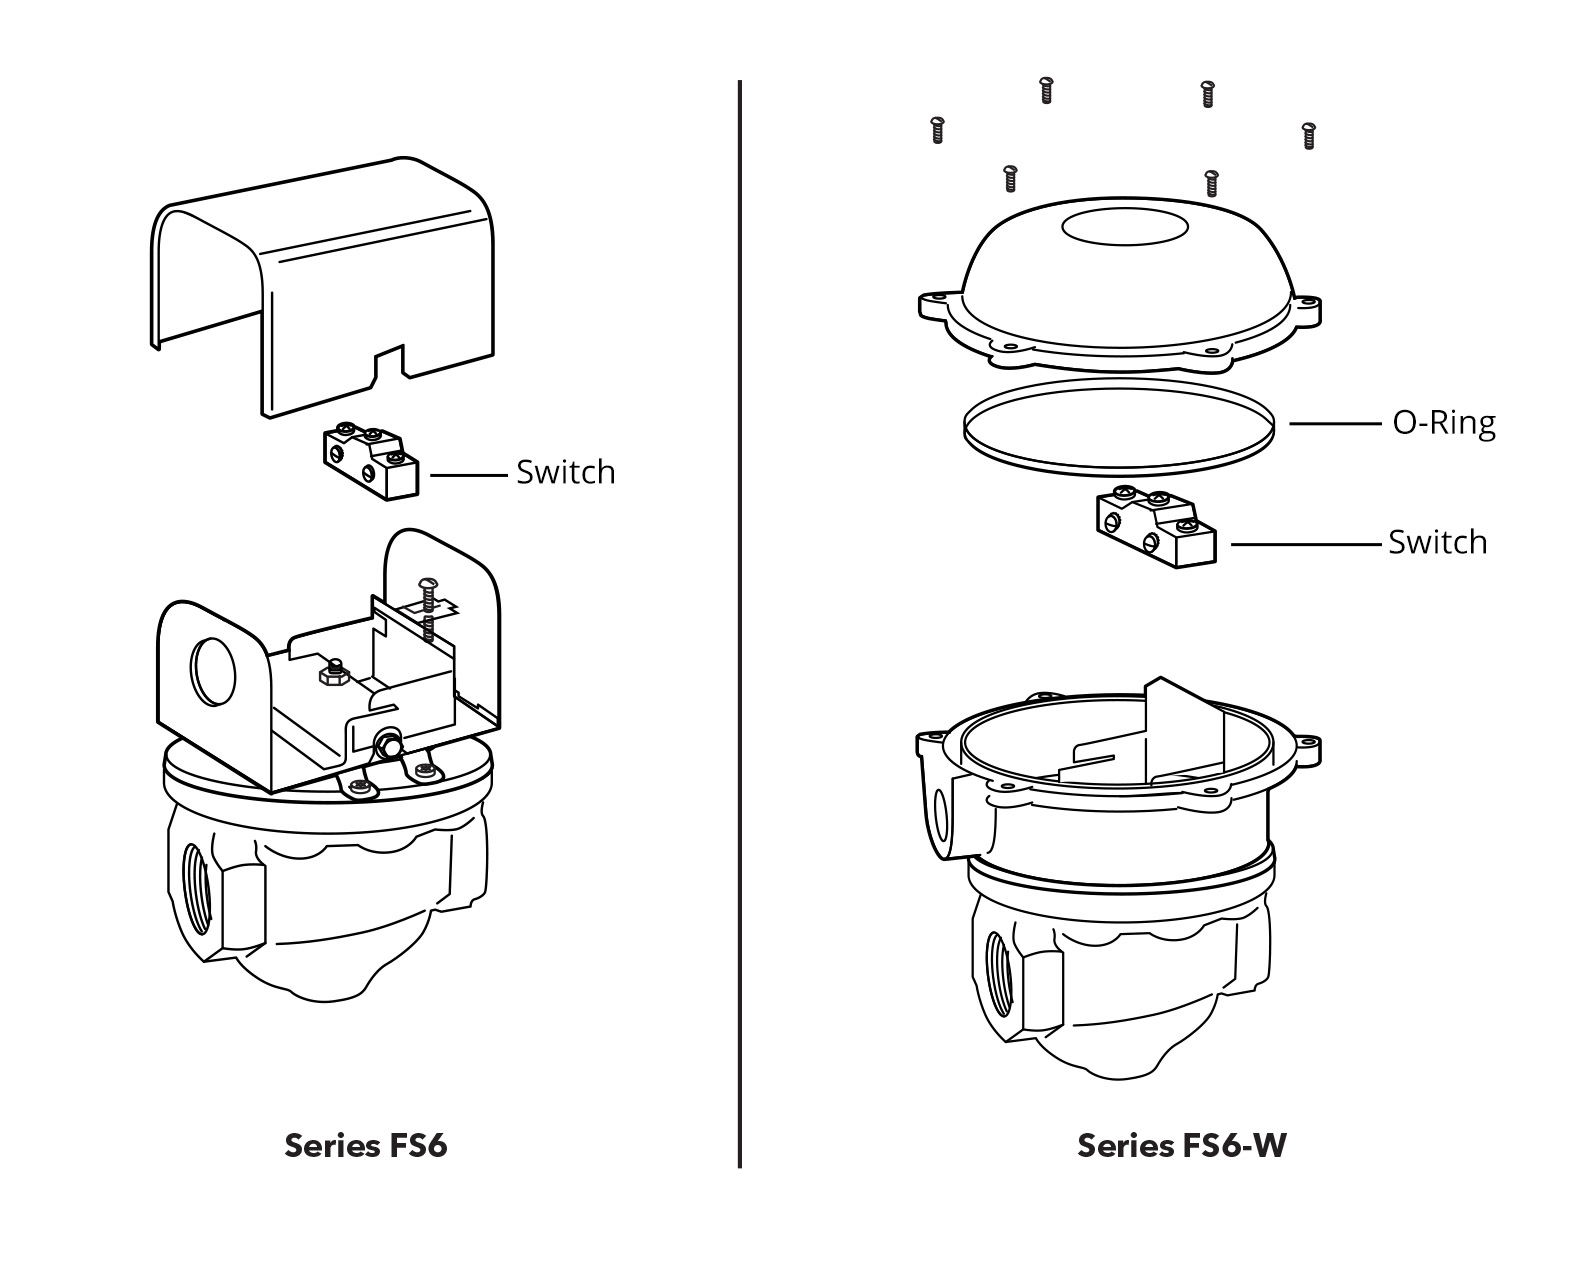 Mcdonnell Flow Switch Fs4 3 Instructions